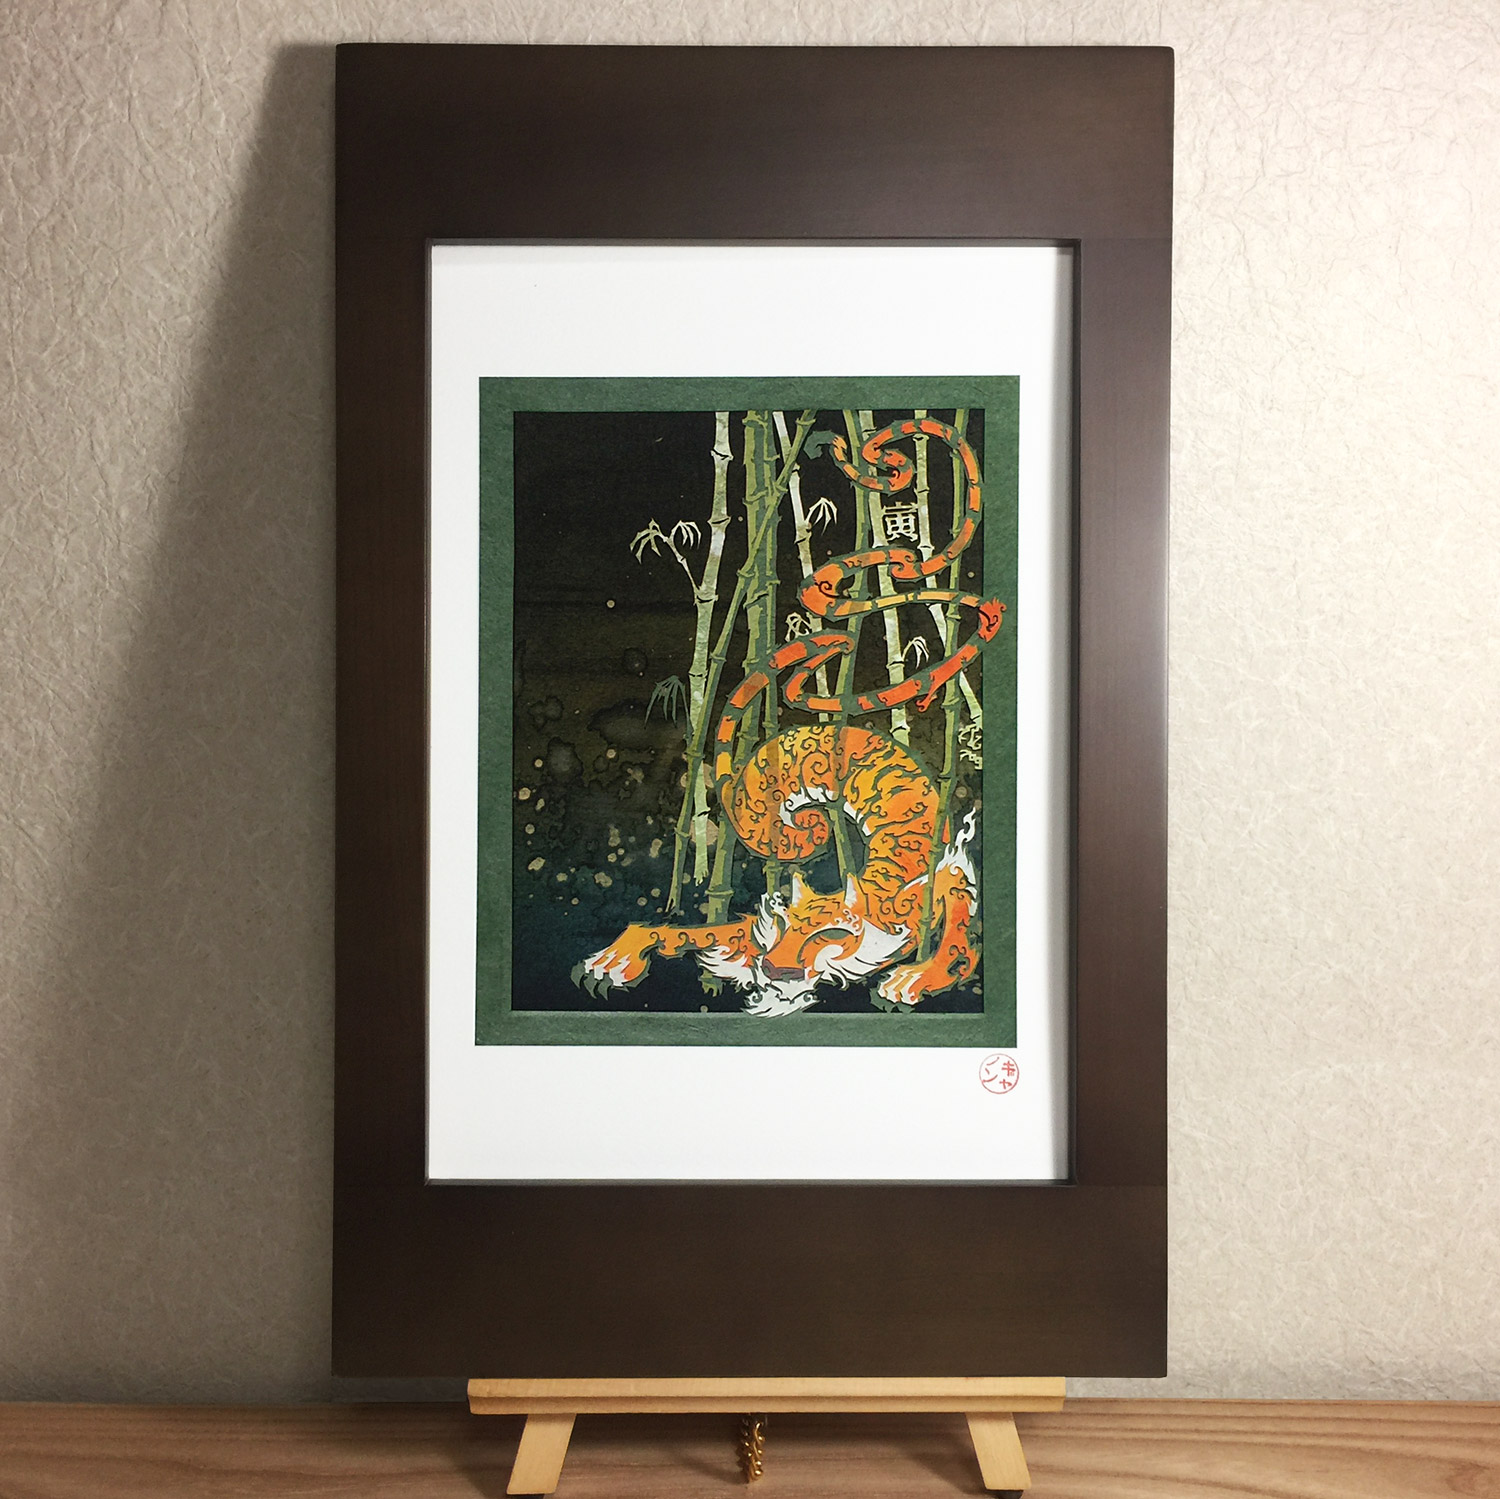 From the Bamboo Forests of the Night - open-edition giclée print now available